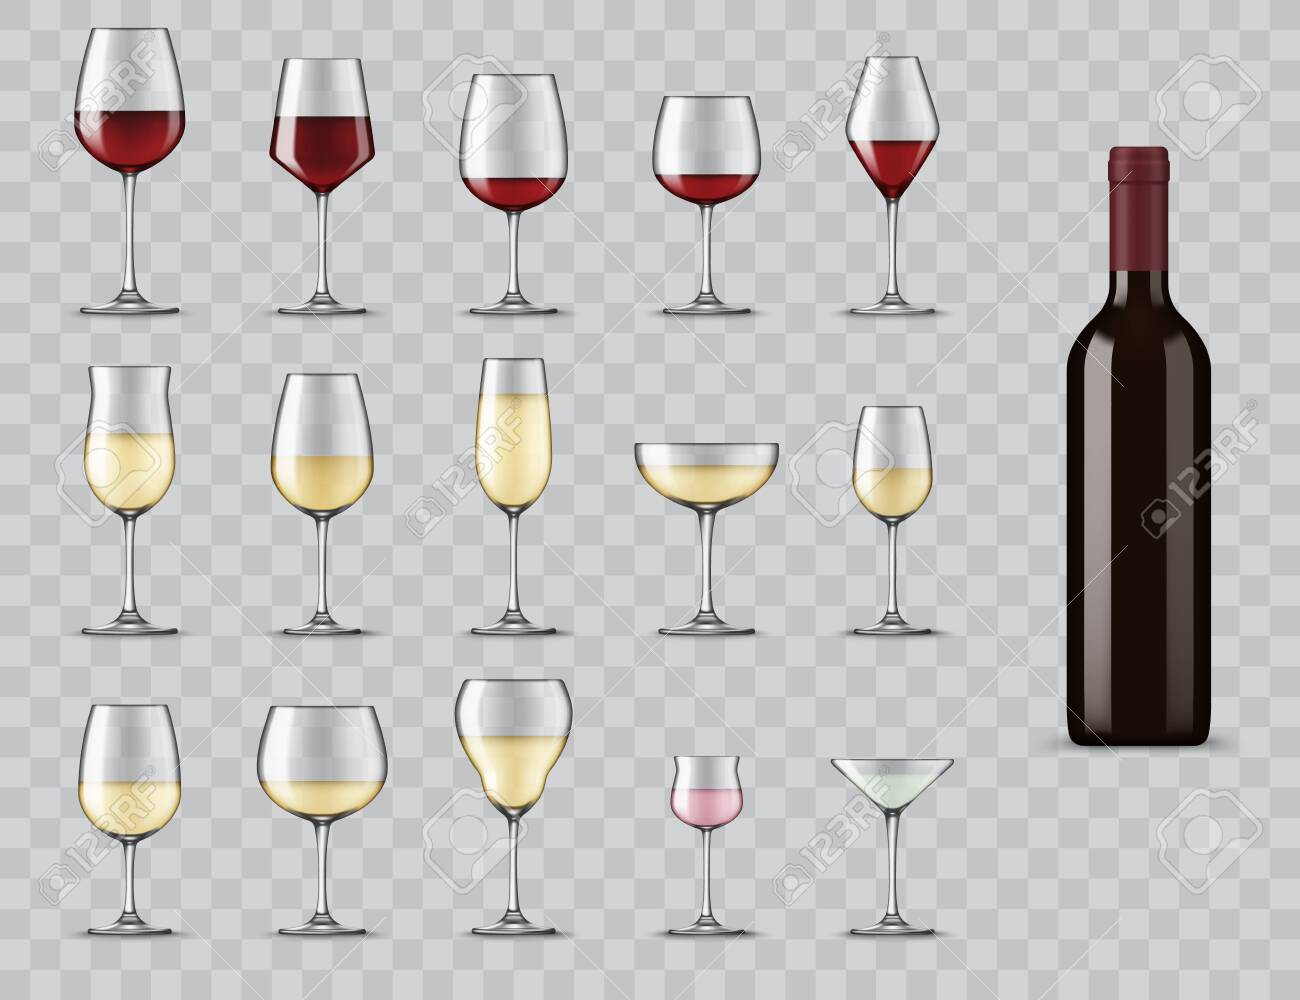 Types of wine glasses. Realistic bottle and glassware for white, red, rose wine, champagne and martini cocktail. Full, light and medium bodied glasses for alcohol drinks isolated 3d vector icons set - 150922056